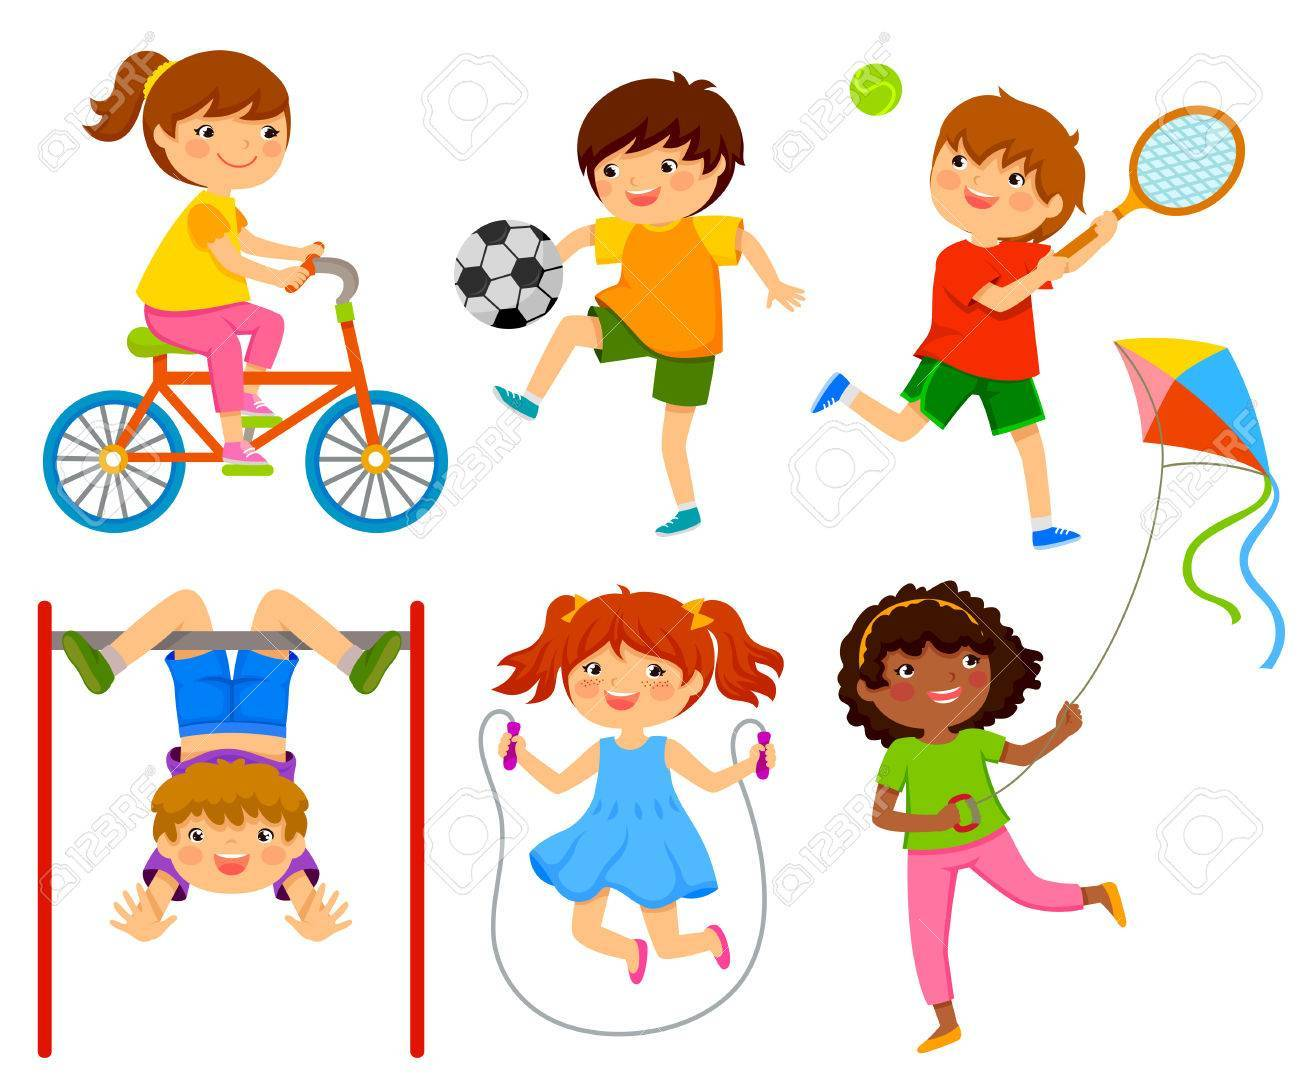 Free clipart children playing outside clipart download Kids playing free clipart 1 » Clipart Portal clipart download